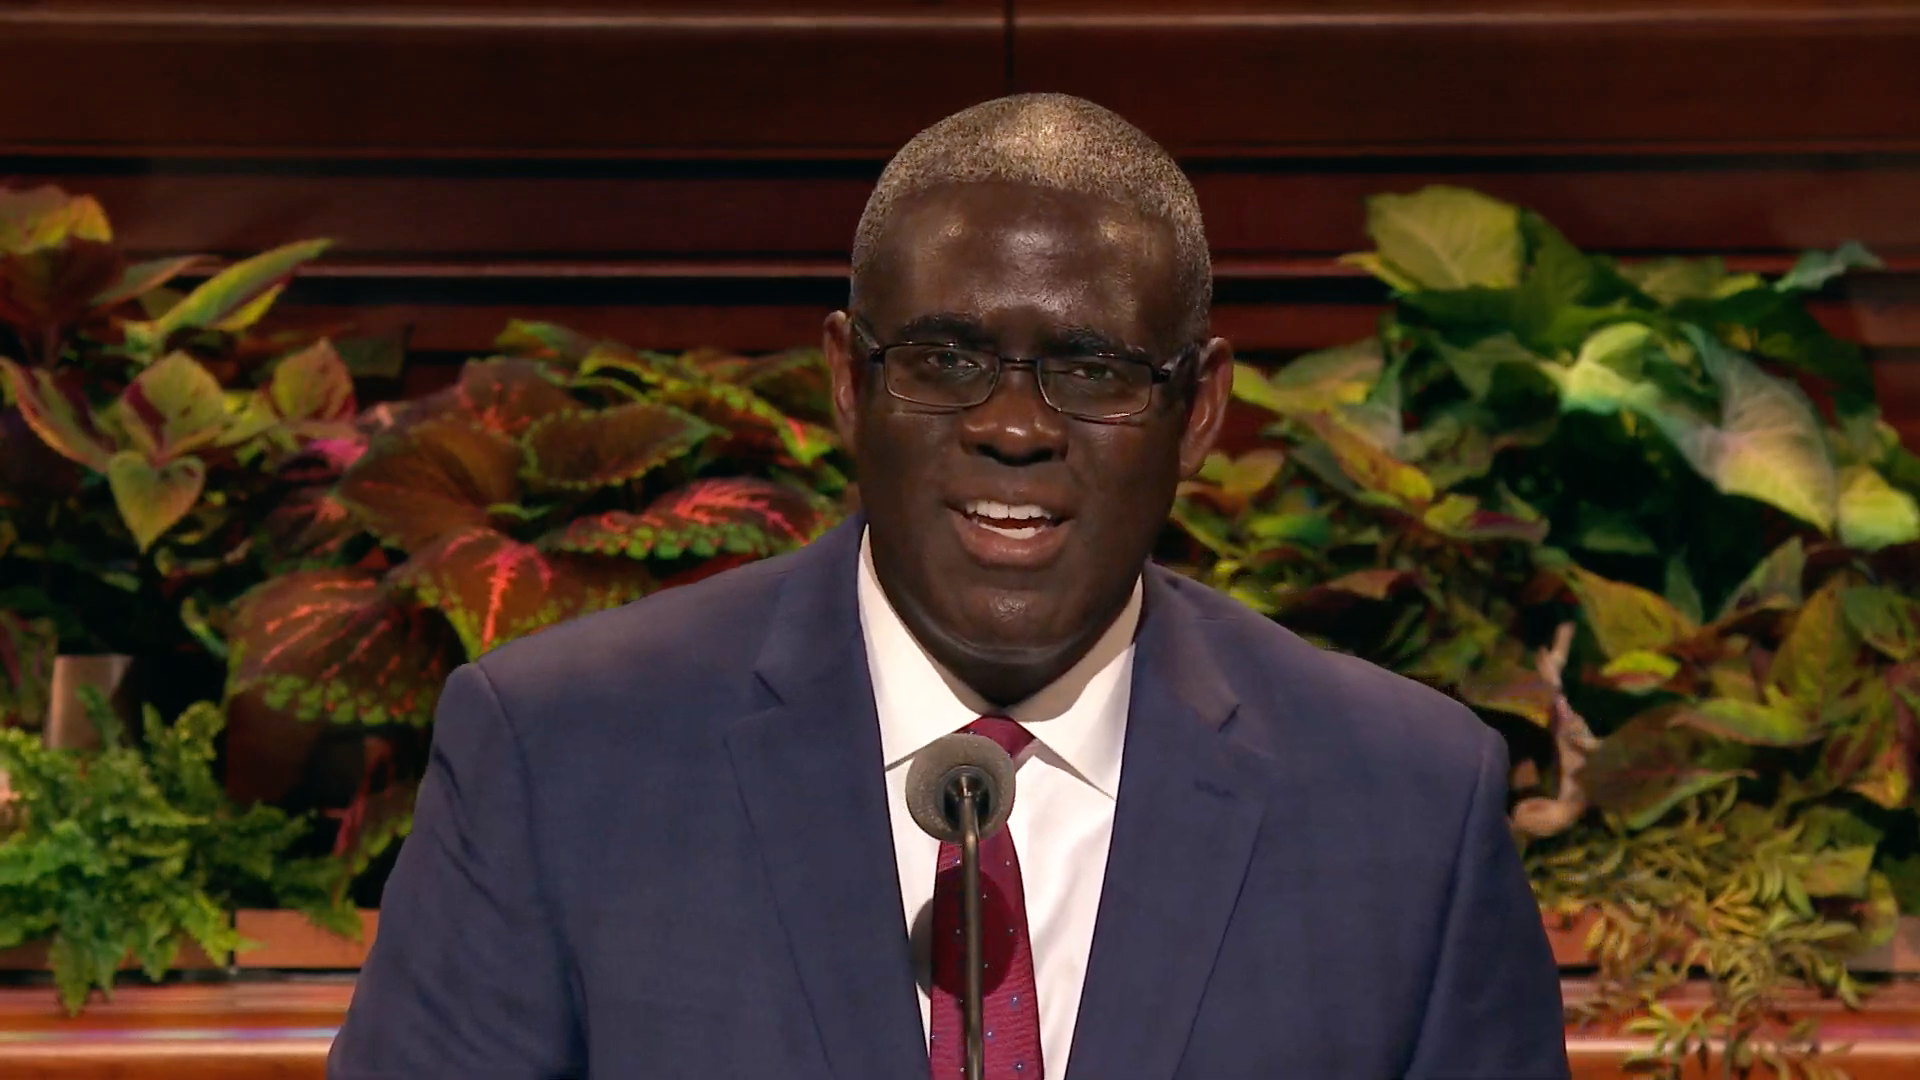 Elder Peter M. Johnson, a General Authority Seventy, speaks during the Sunday afternoon session in the 189th Semiannual General Conference of the Church on Sunday, Oct. 6, 2019.